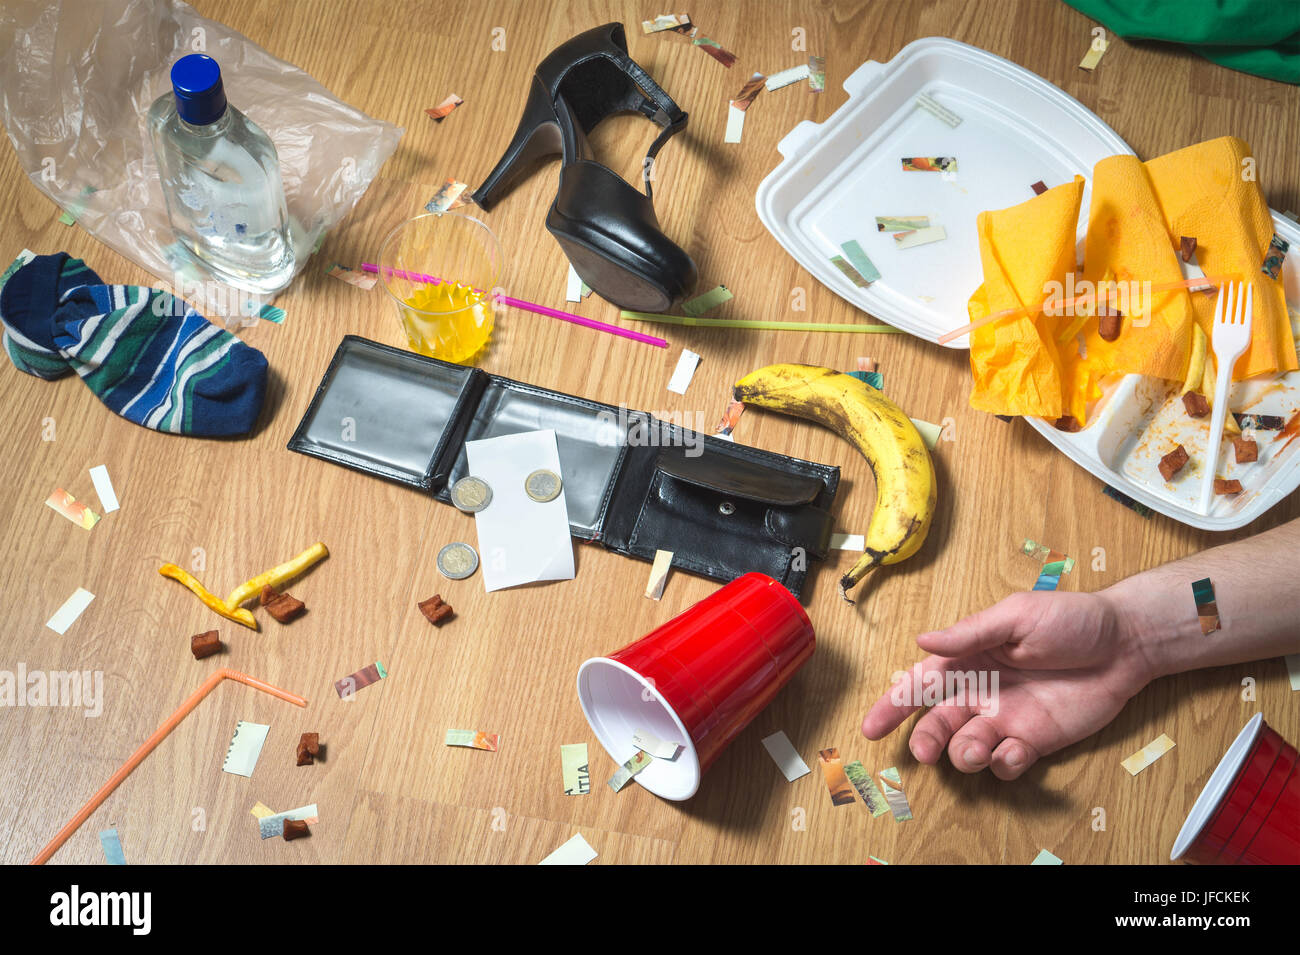 Hangover after partying. Man lying on the floor, hand visible. Trash, food leftovers, clothes, high heels and bottles - Stock Image